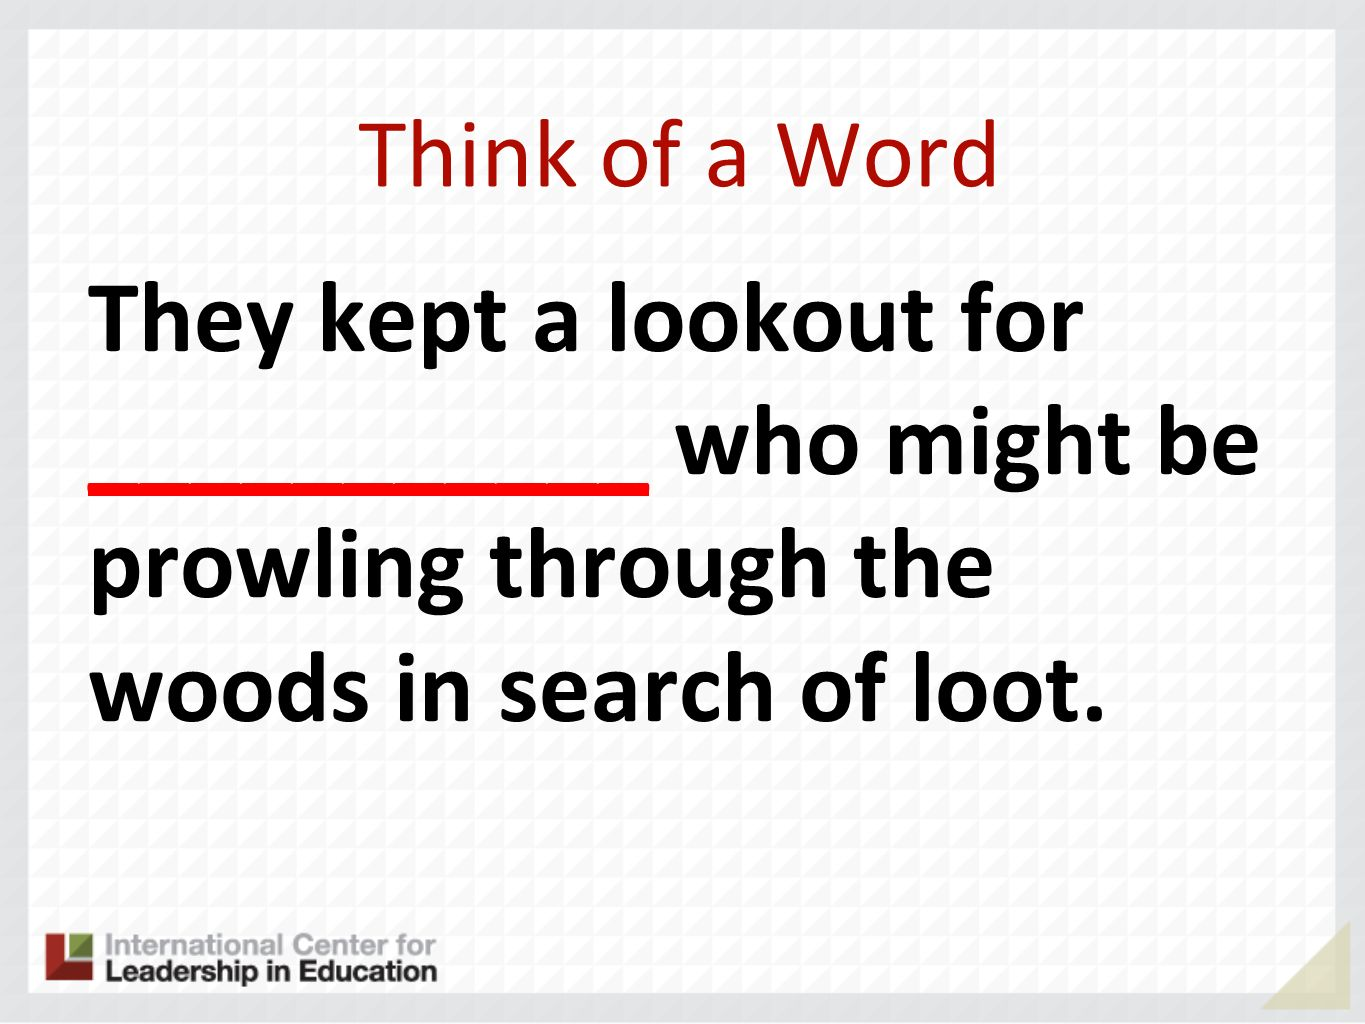 Think of a Word They kept a lookout for ___________ who might be prowling through the woods in search of loot.